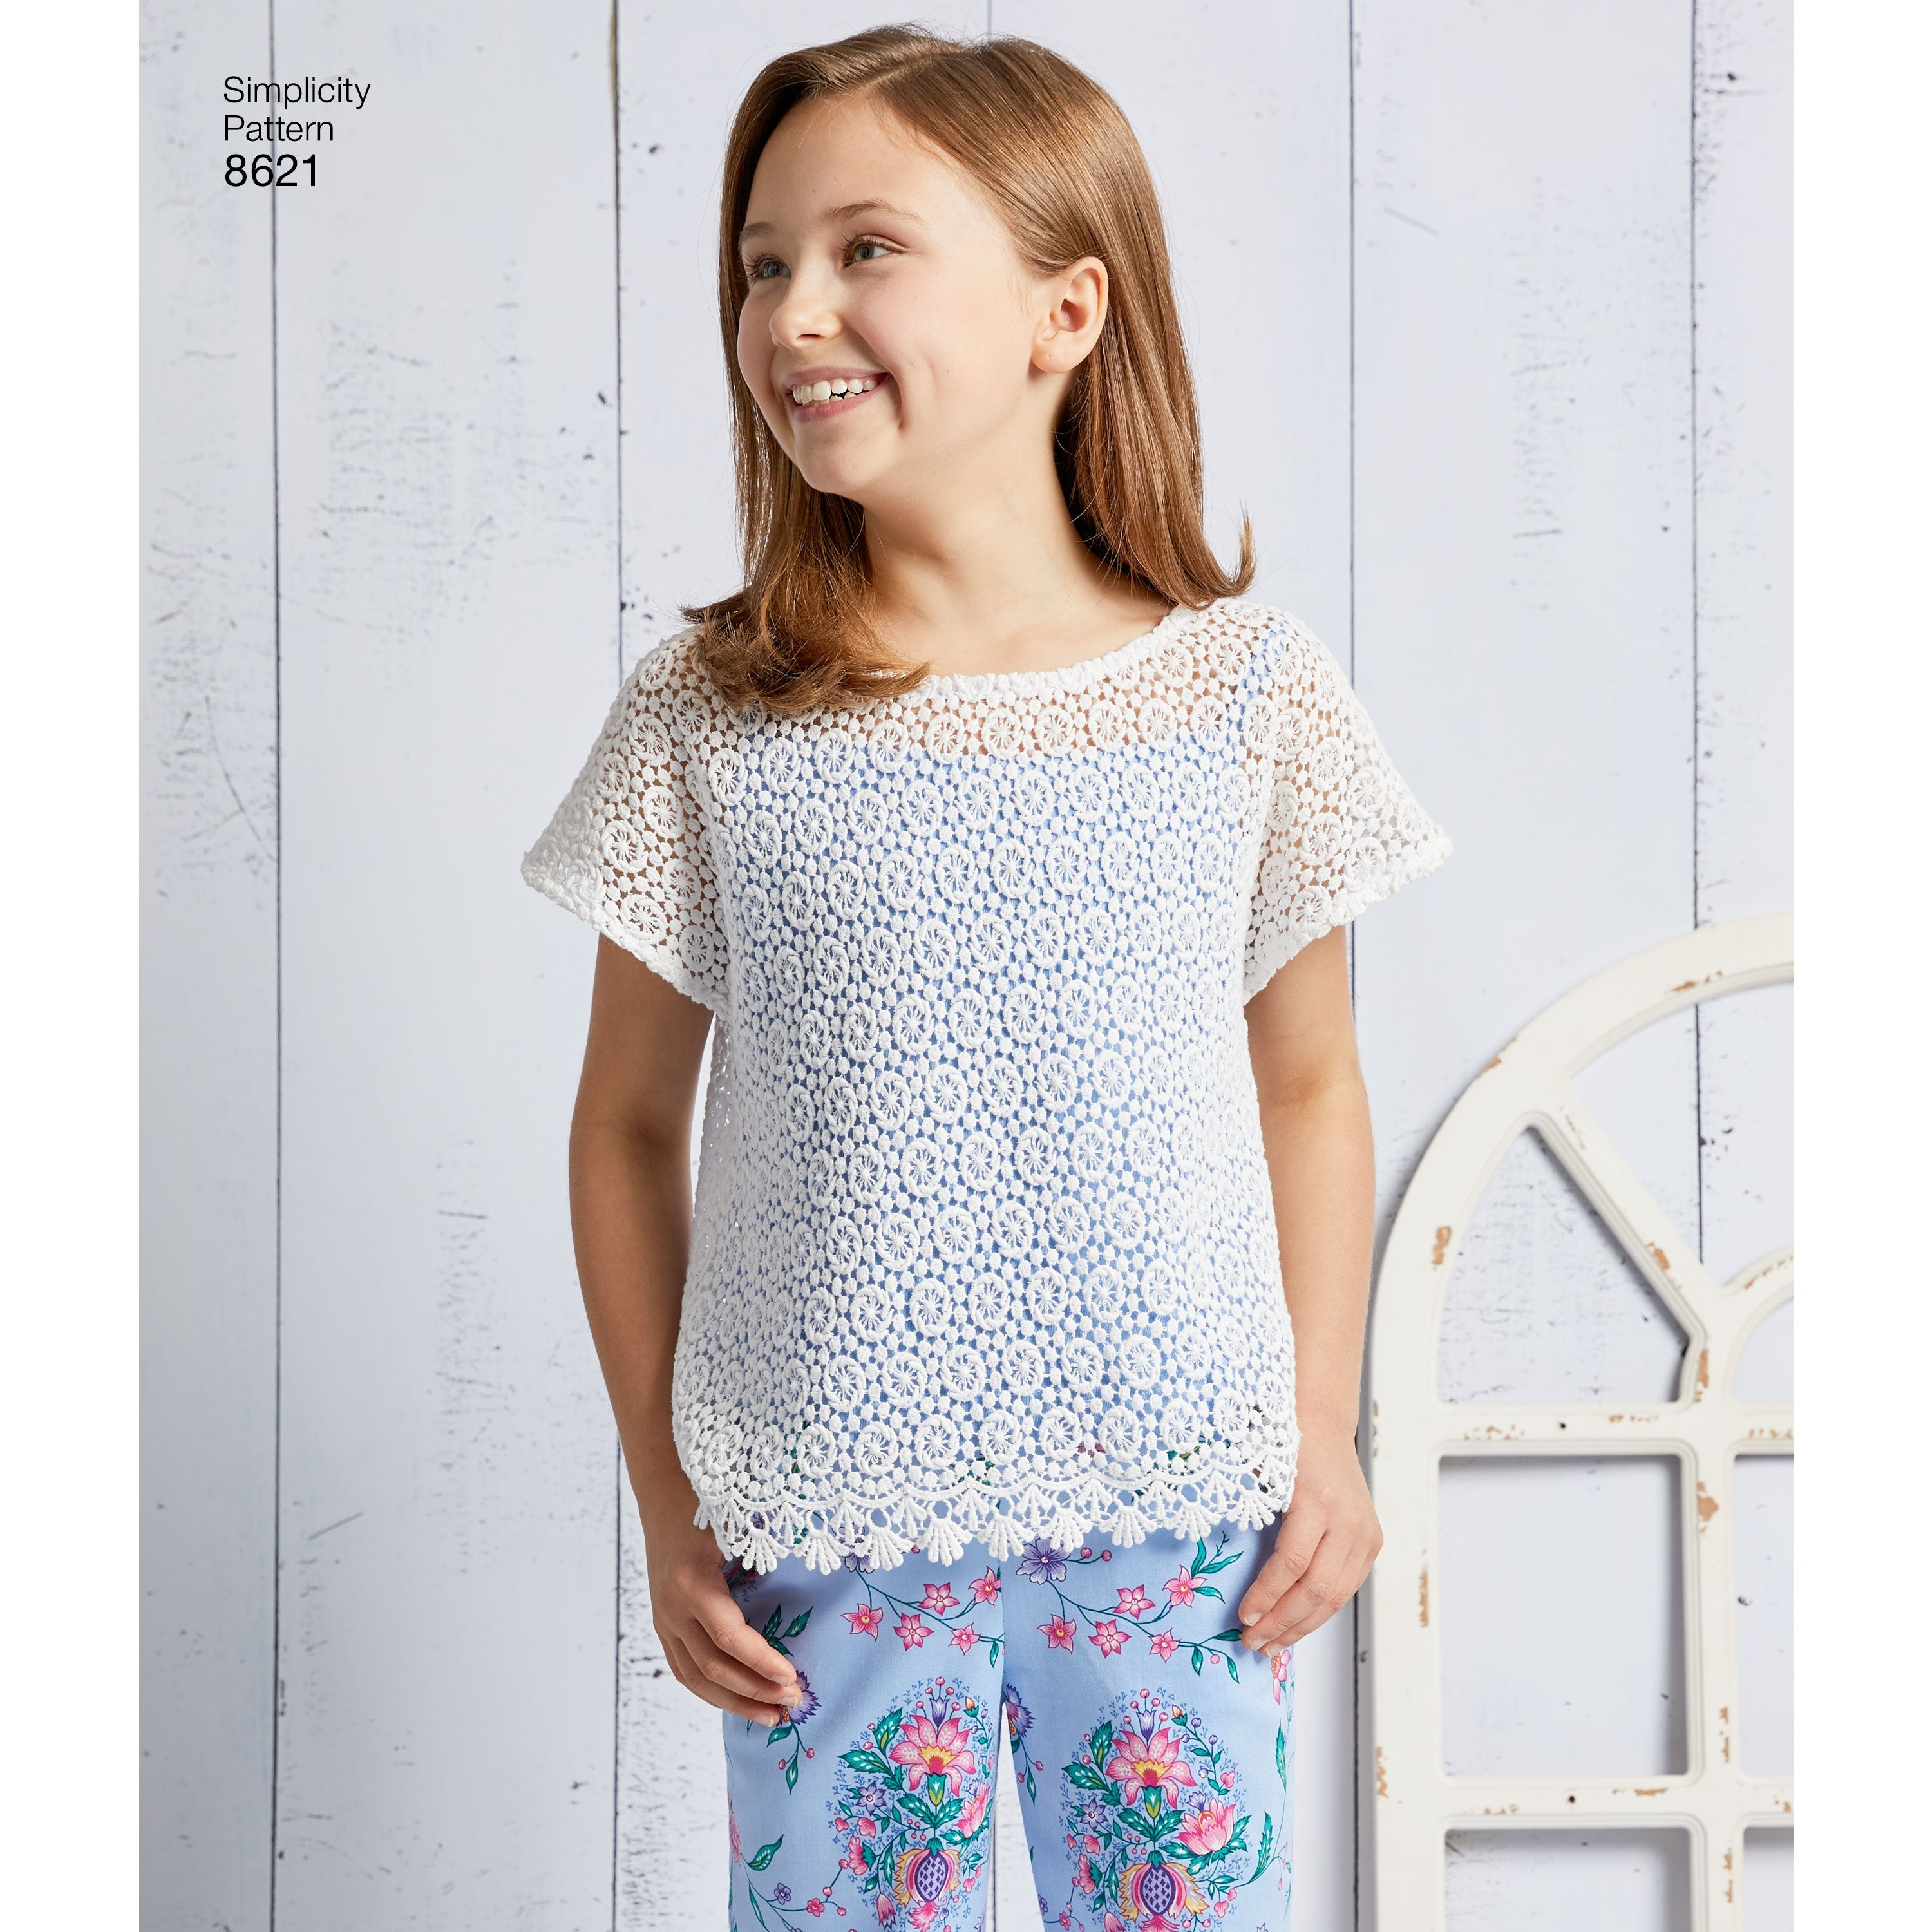 S8621 Girls' Dress, Top, Pants and Camisole